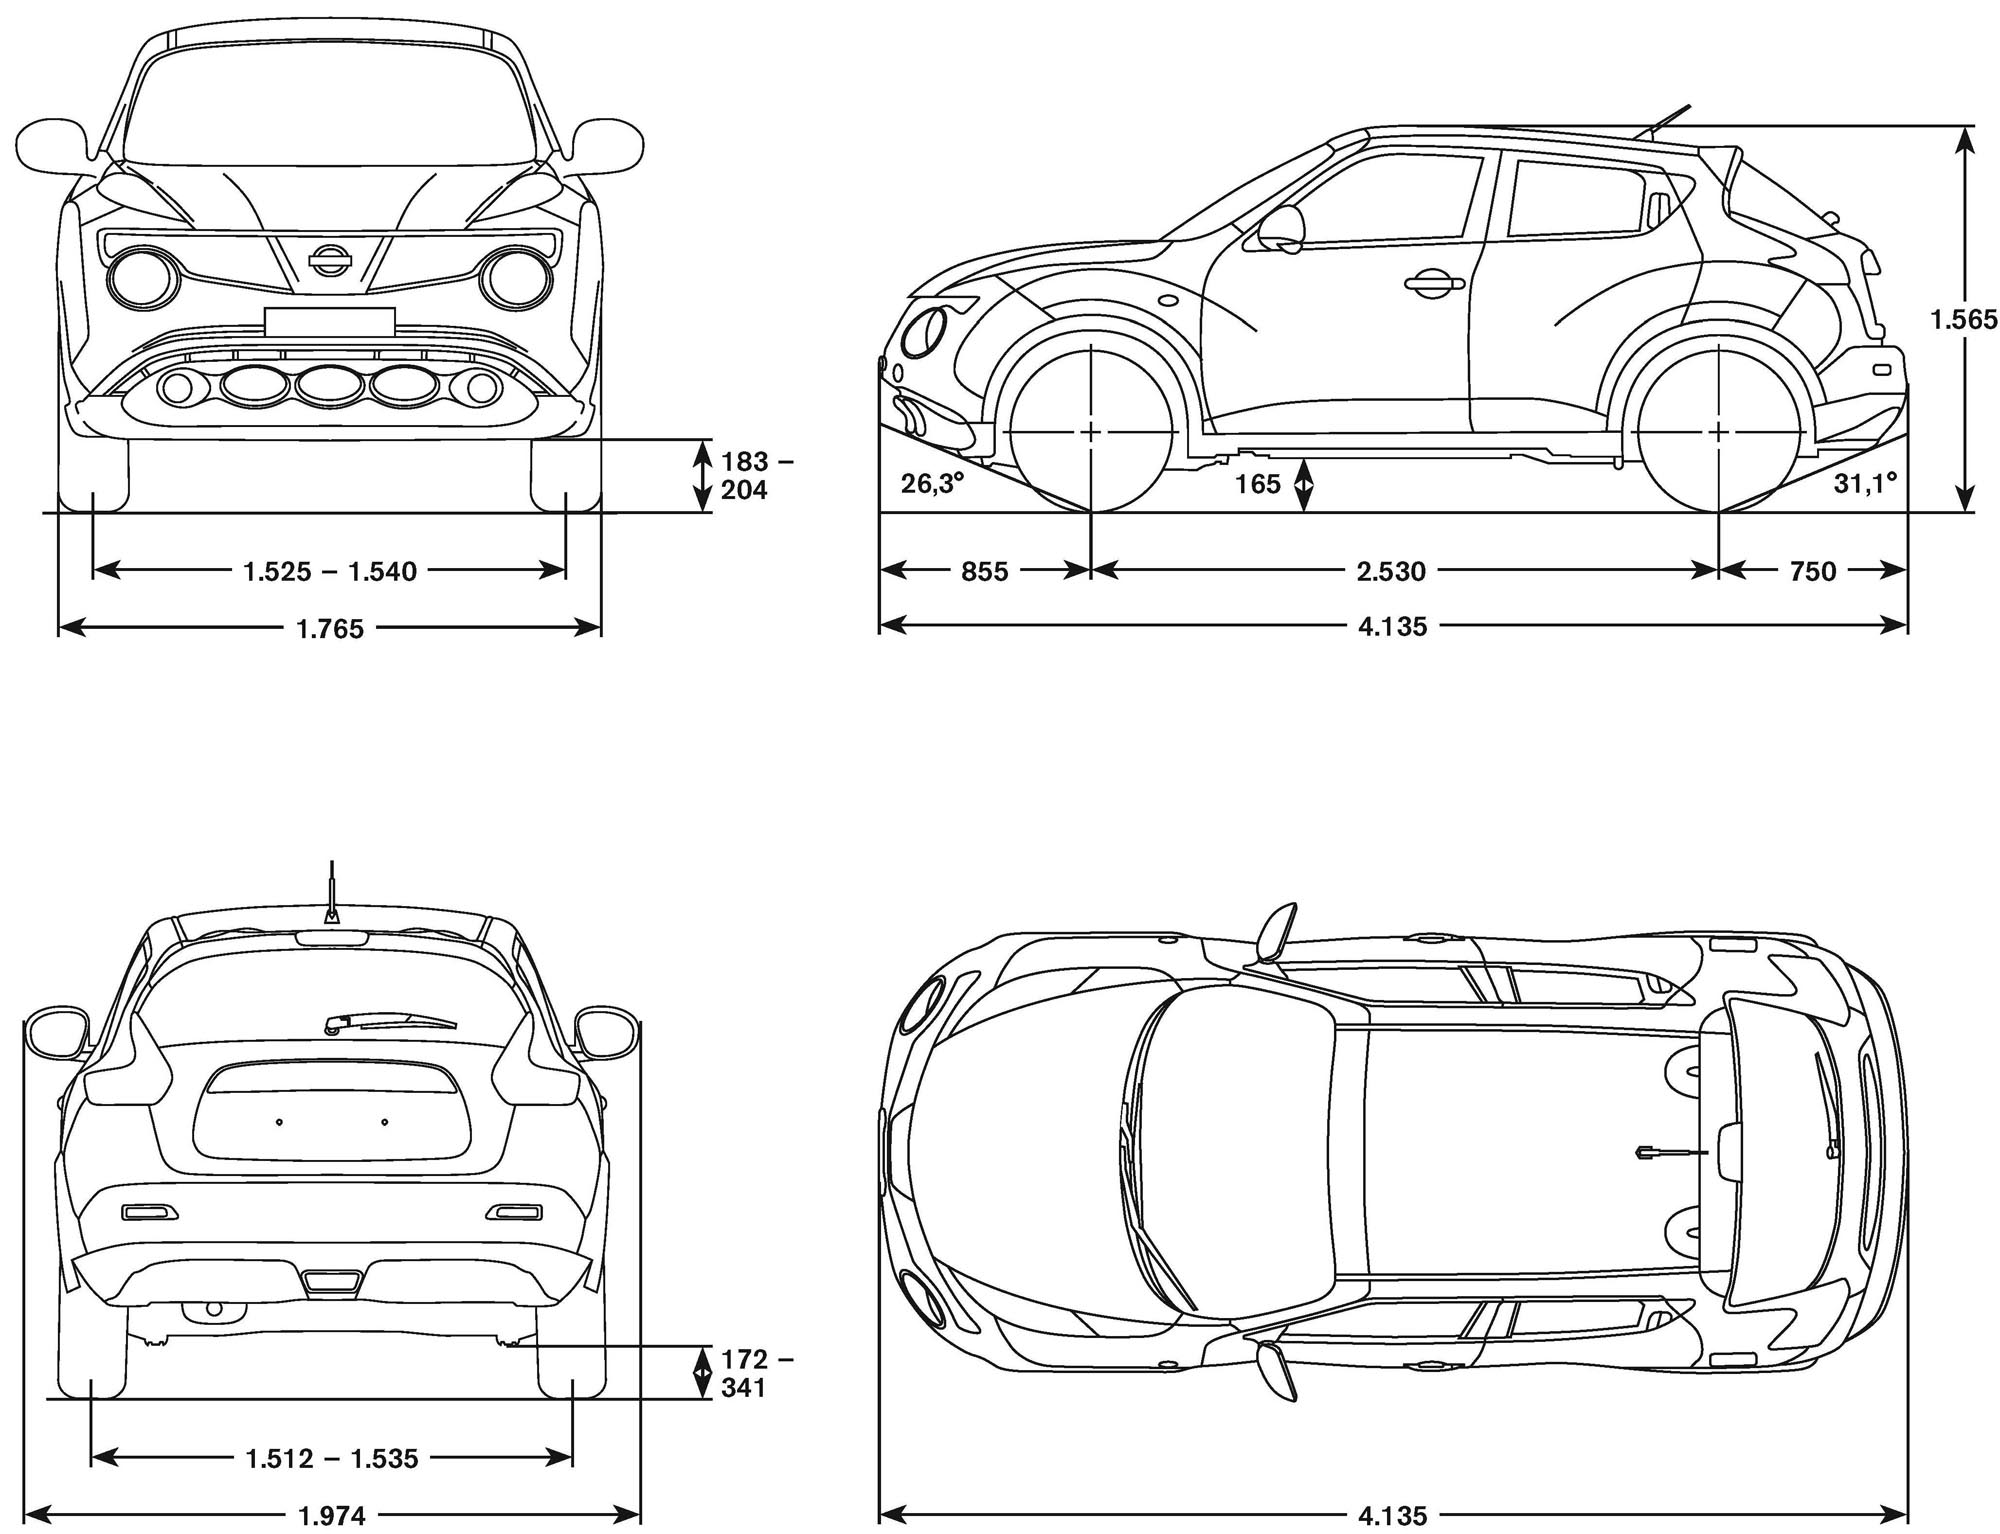 Nissan juke 2010 blueprint download free blueprint for 3d modeling nissan juke blueprint malvernweather Images